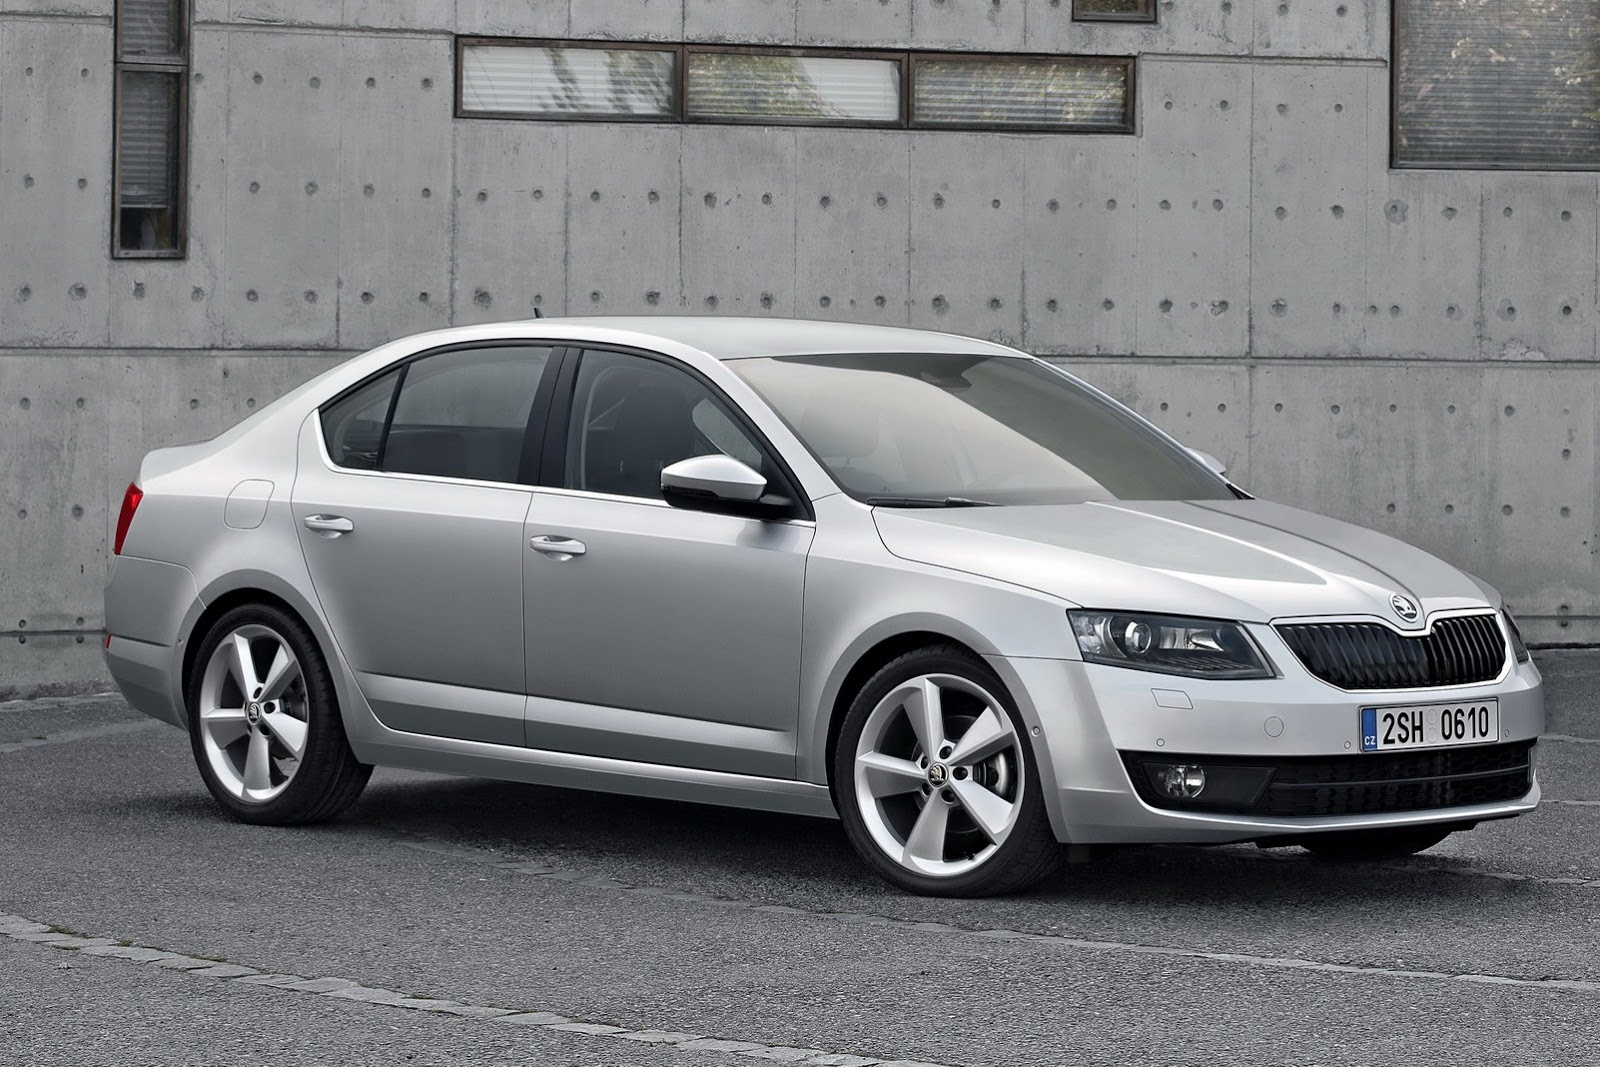 2013 skoda octavia iii autooonline magazine. Black Bedroom Furniture Sets. Home Design Ideas